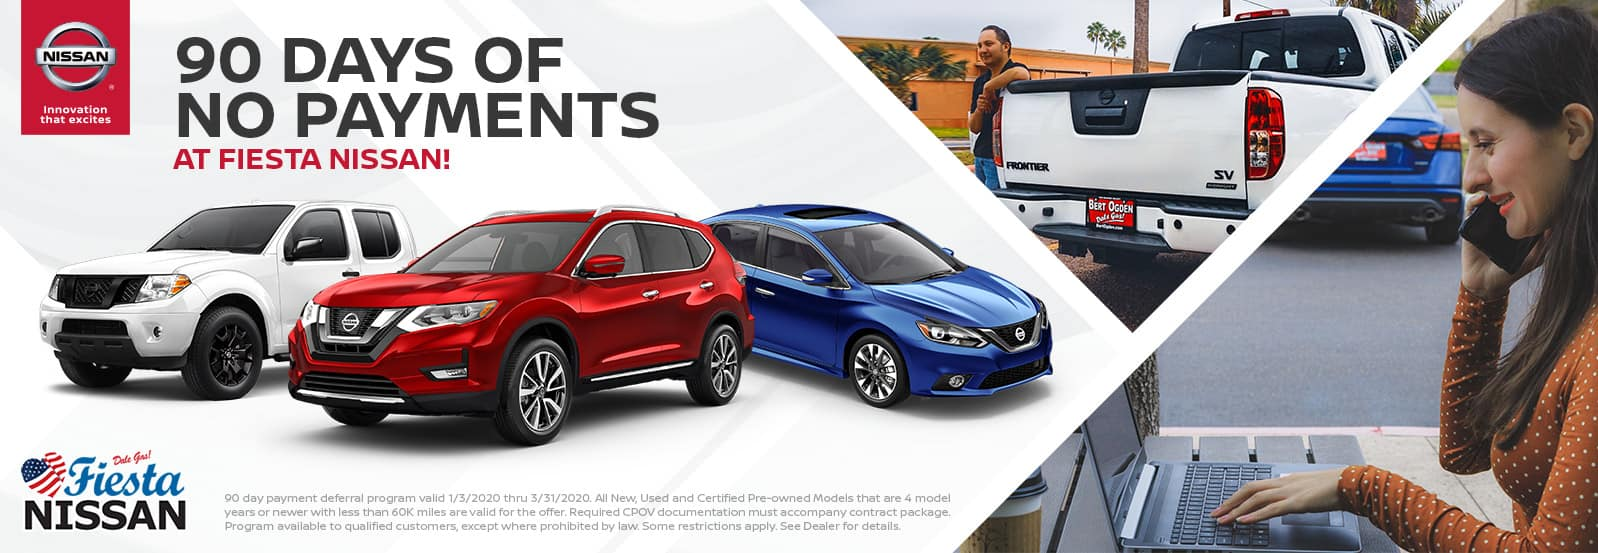 90 Days of No Payments at Fiesta Nissan in Edinburg, TX